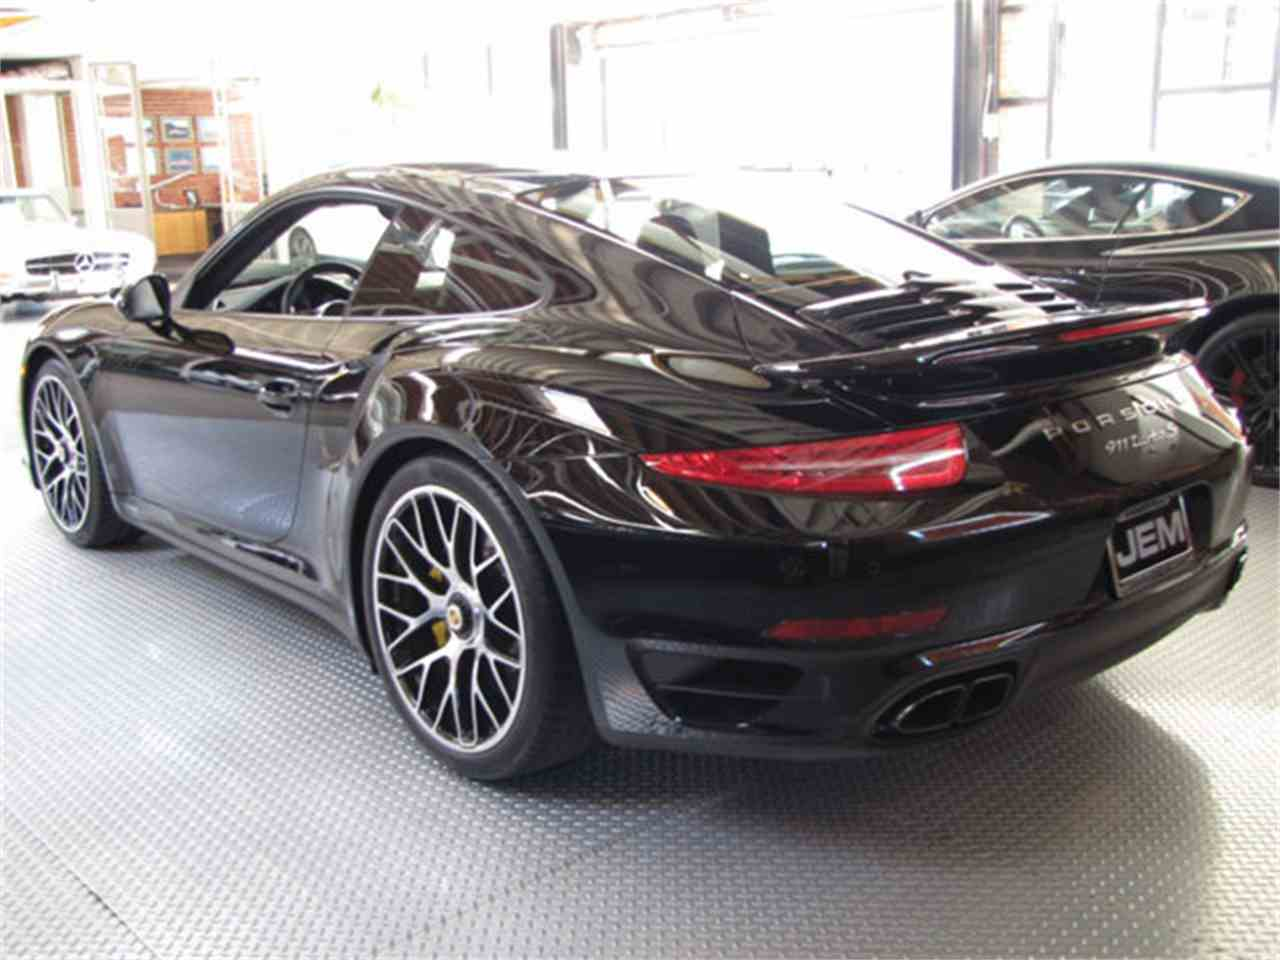 Large Picture of '16 911 located in Hollywood California Offered by JEM Motor Corp. - MFRS